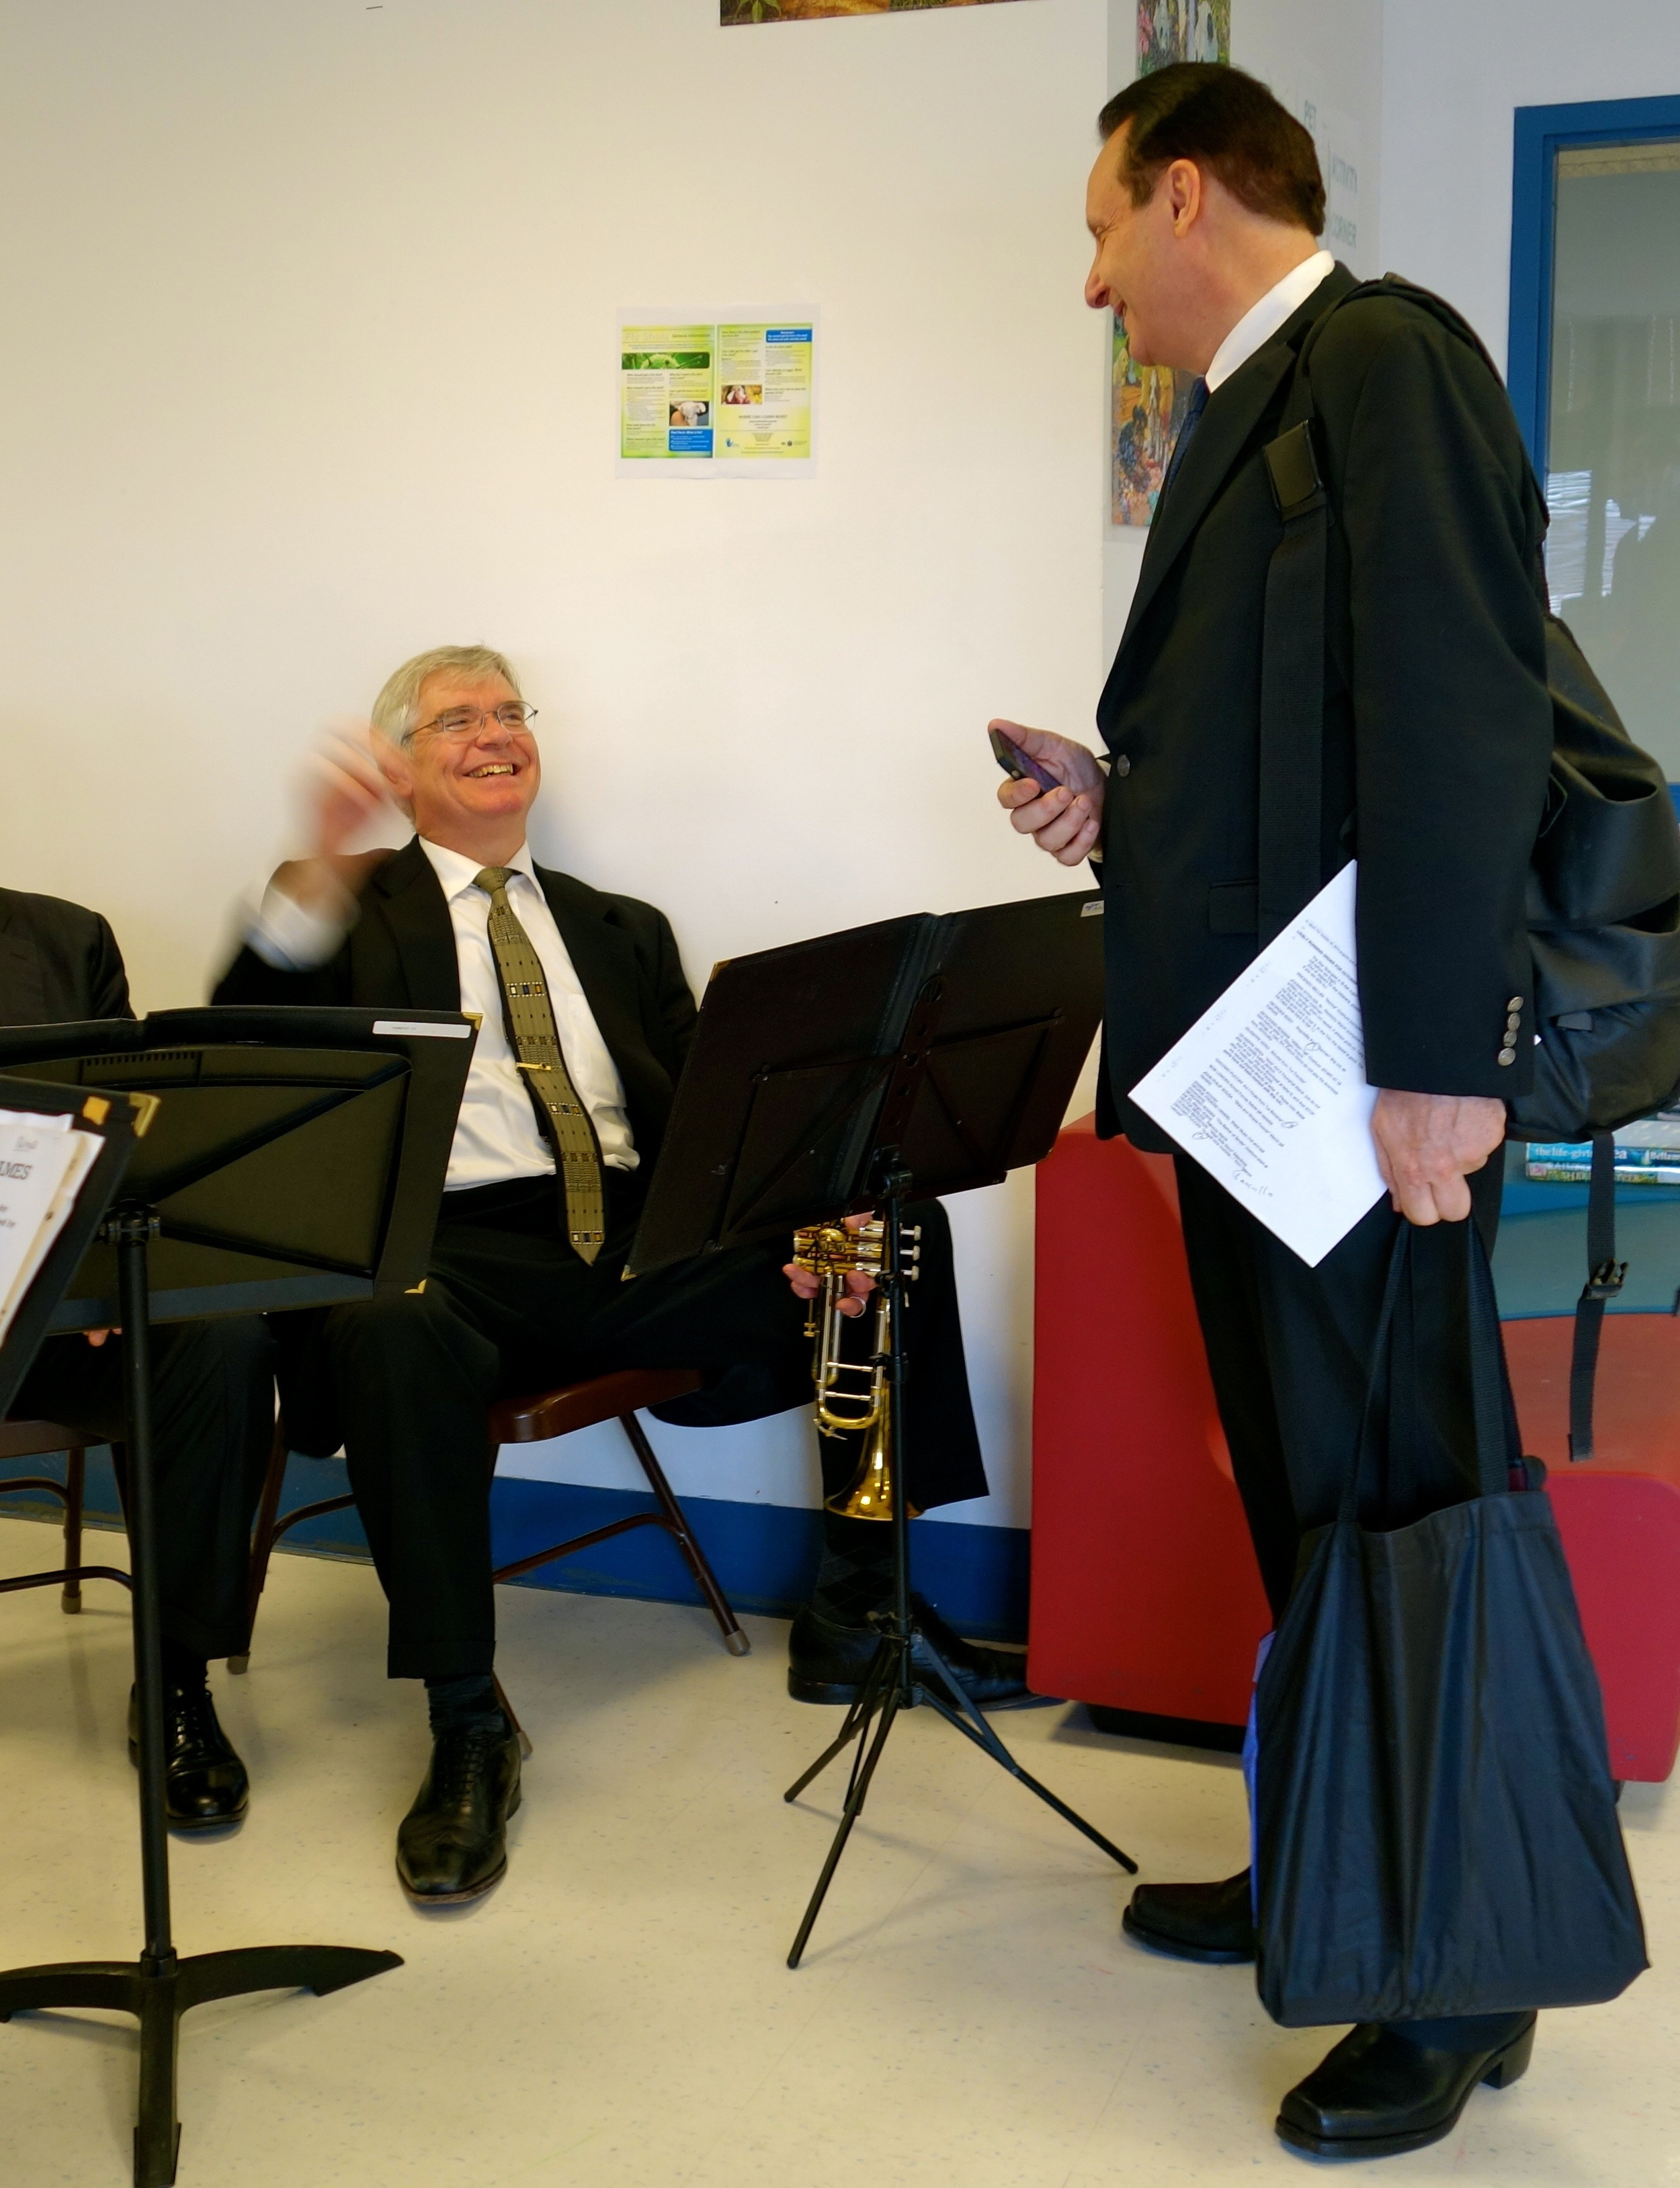 Peter Bond demonstrates his fast tempo conducting prowess to David Langlitz.